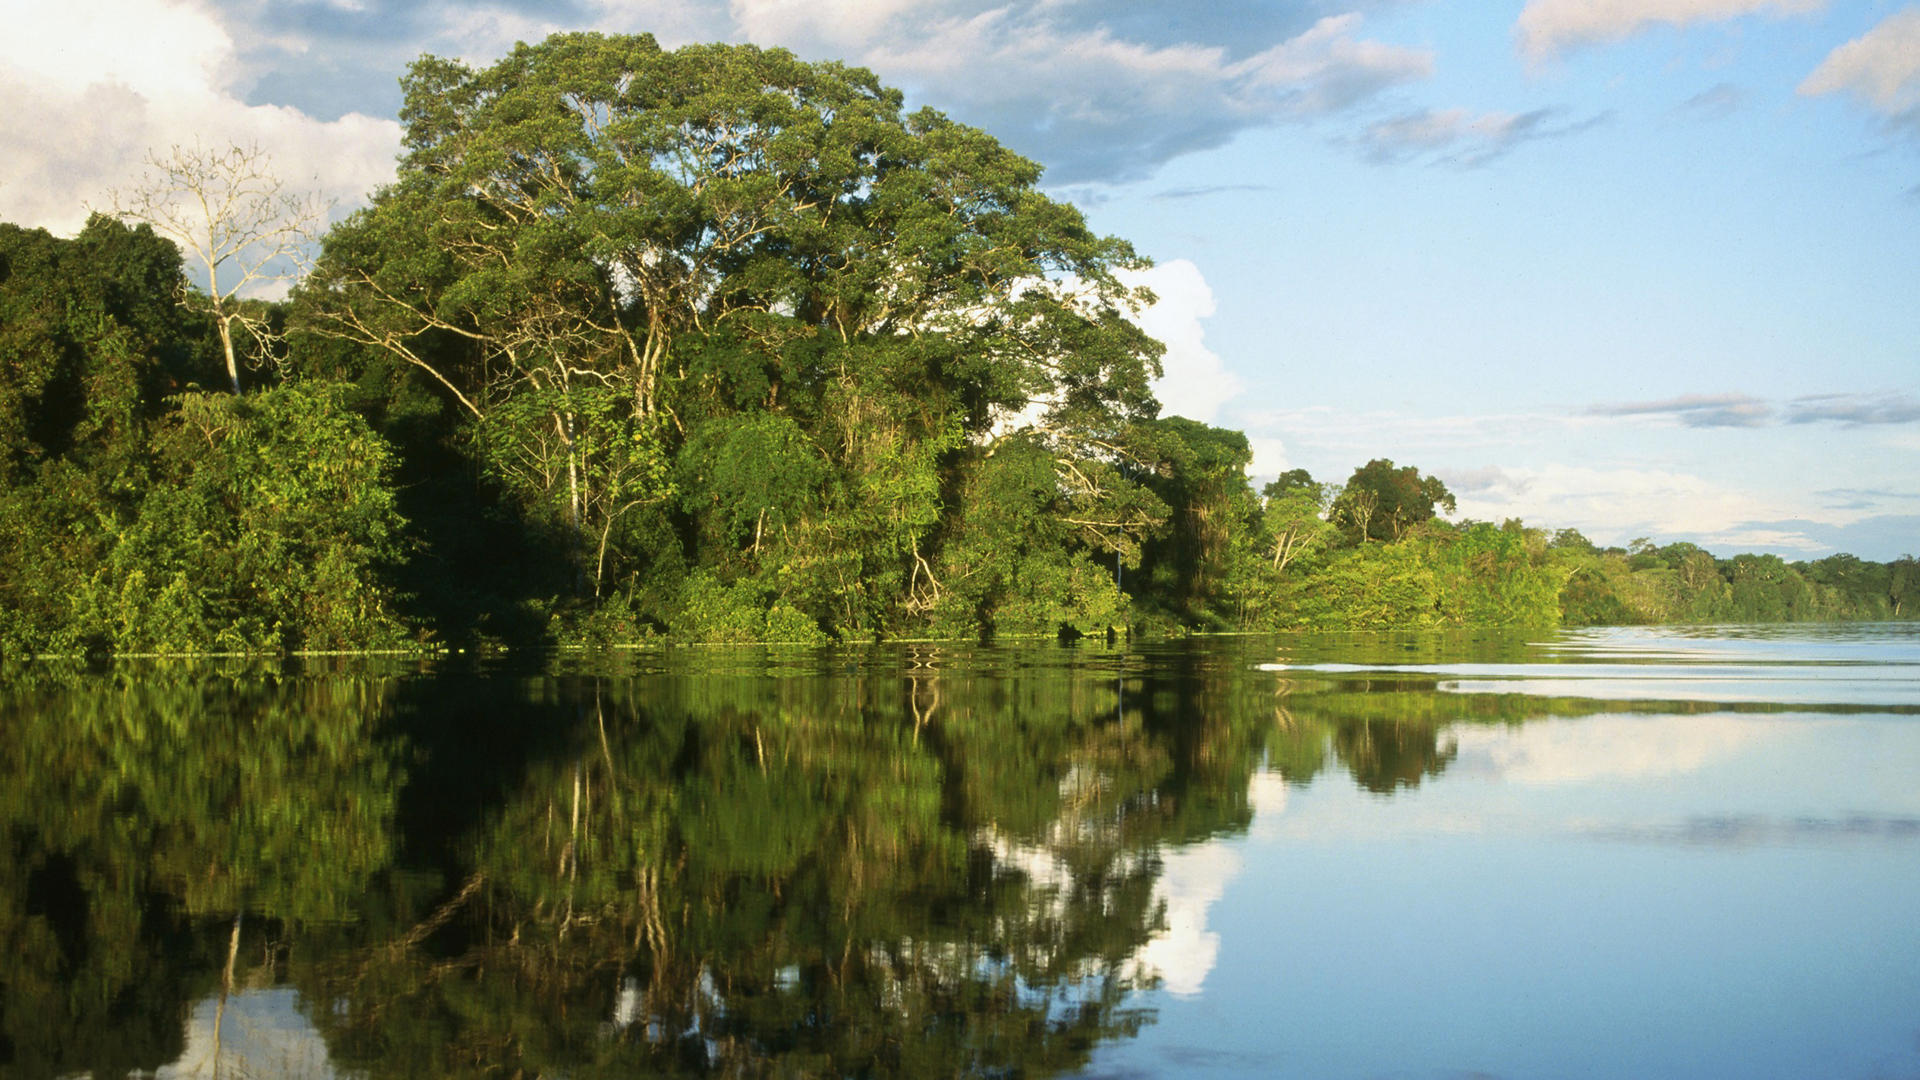 Check out this cool Amazon Jungle River Hd Desktop Wallpaper looking 149